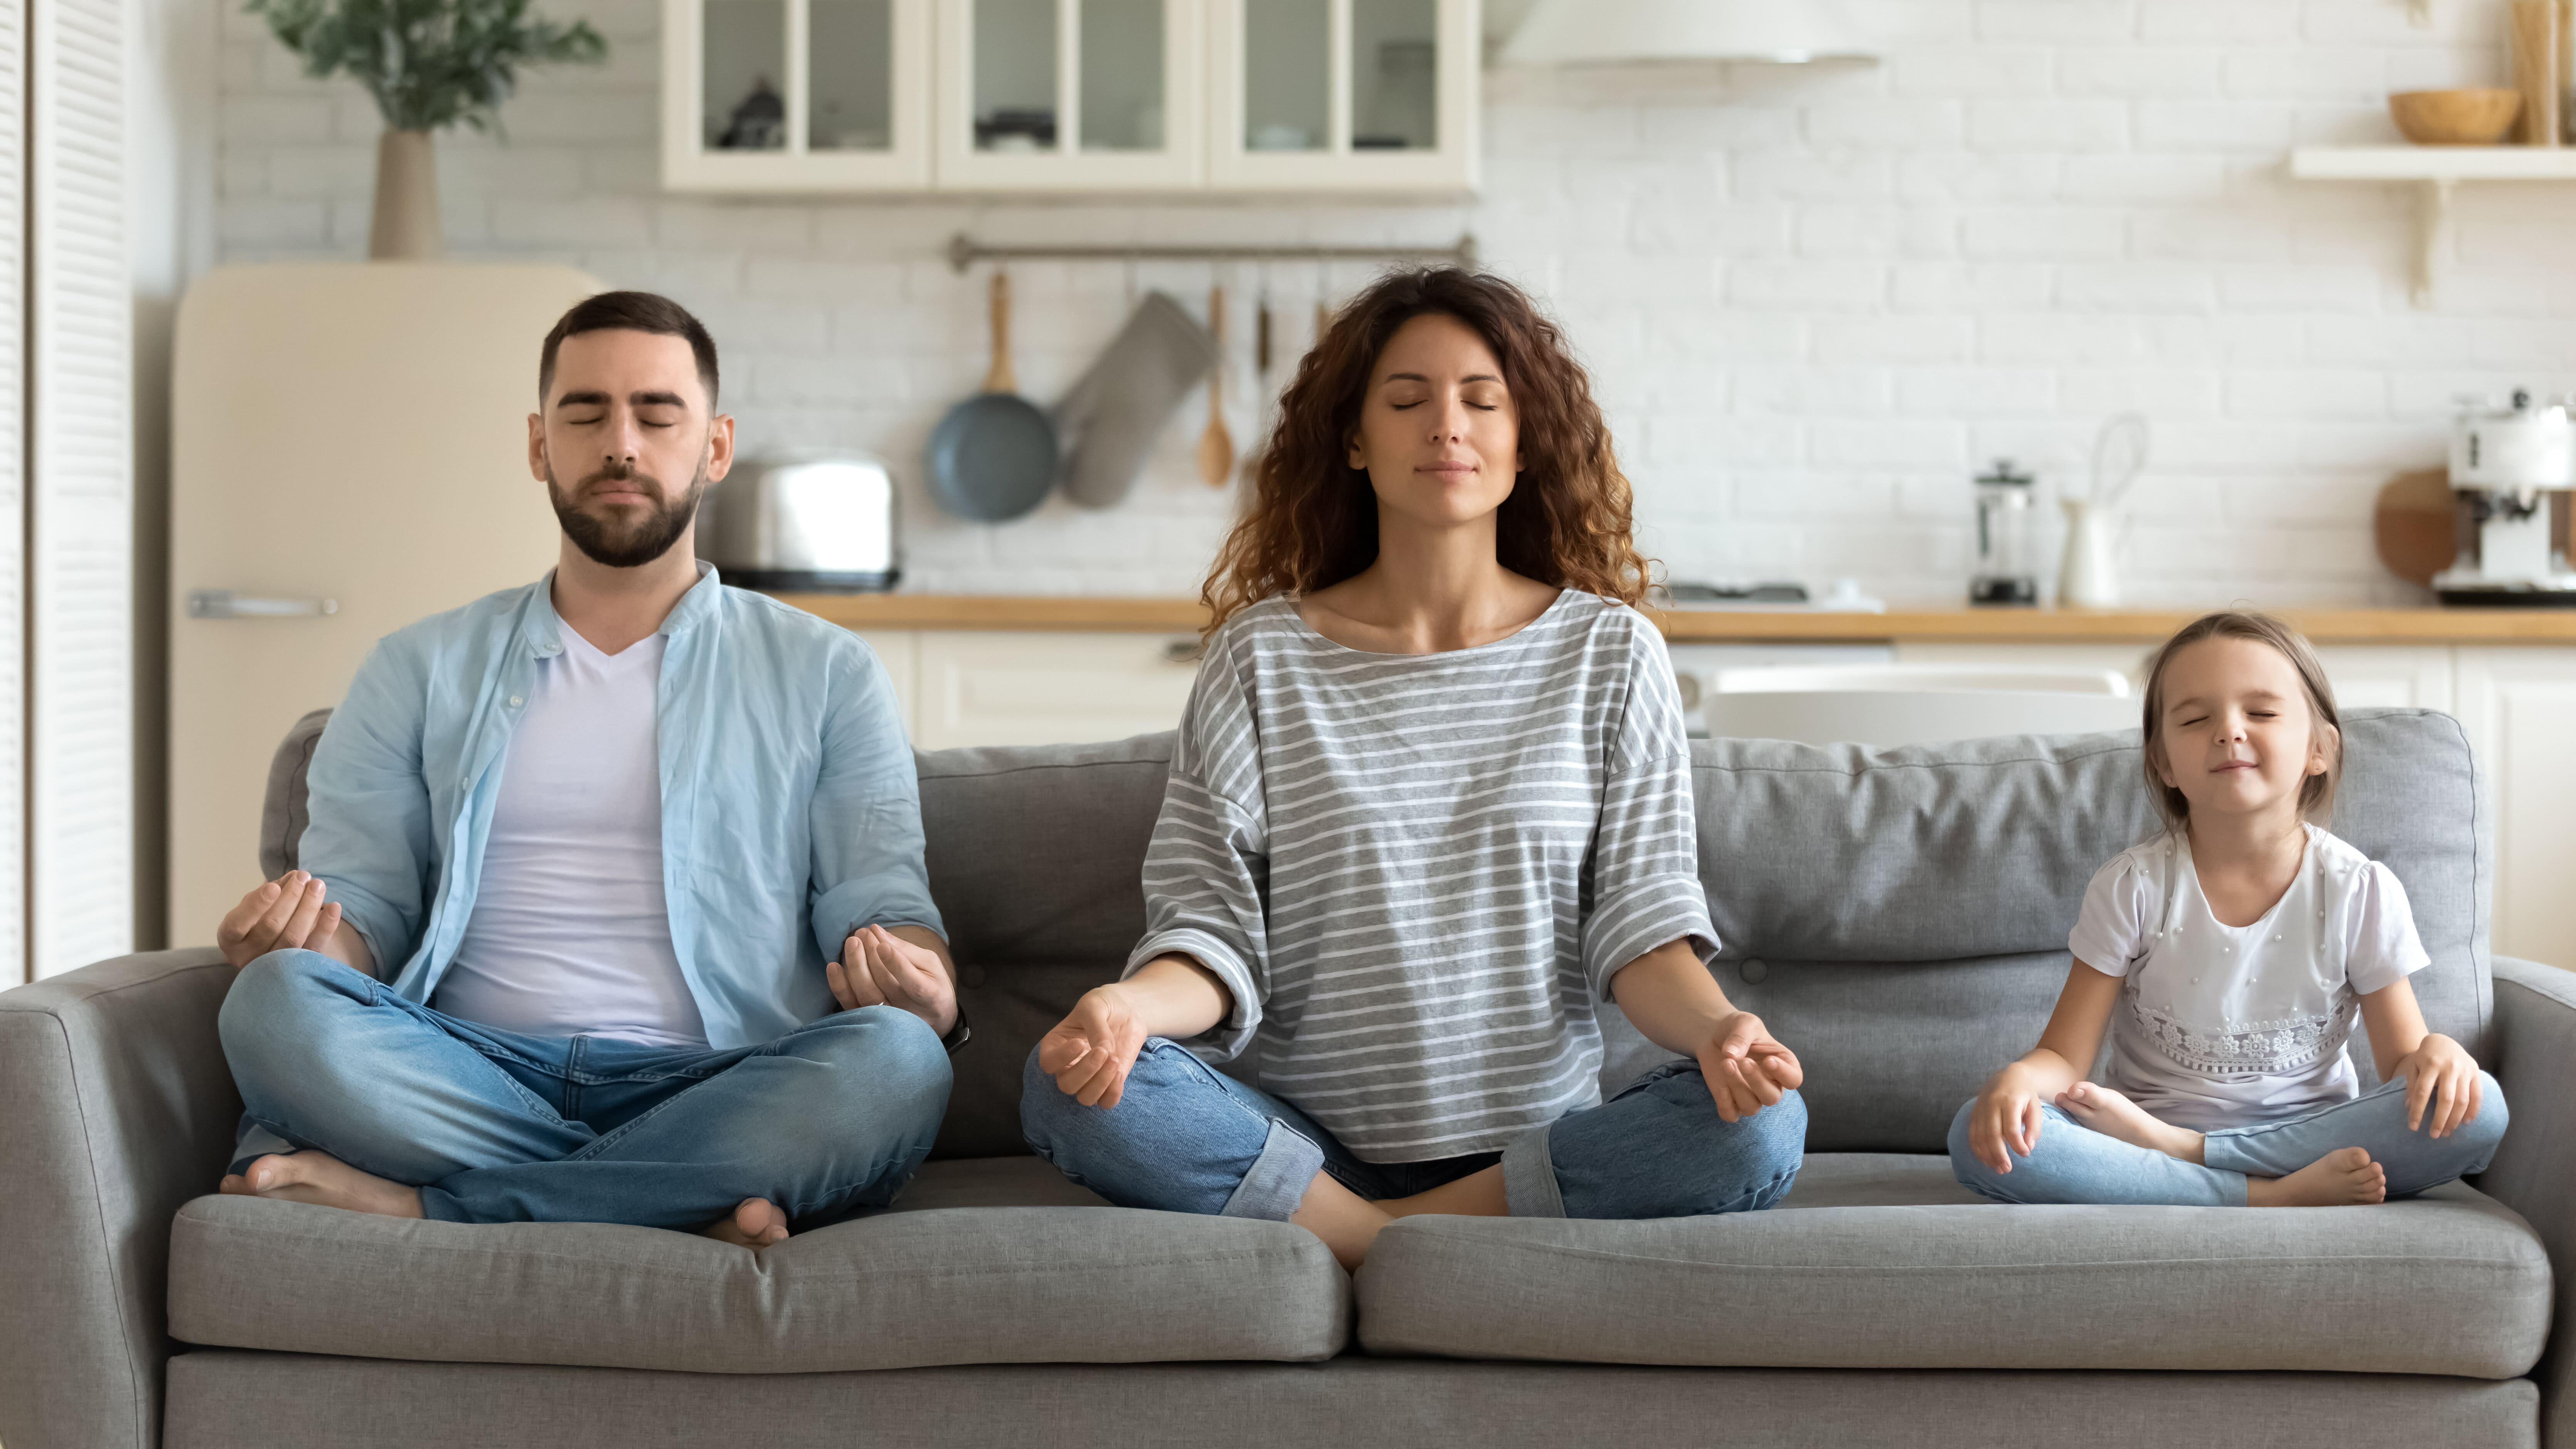 A family cultivating mindfulness to improve acceptance while being present